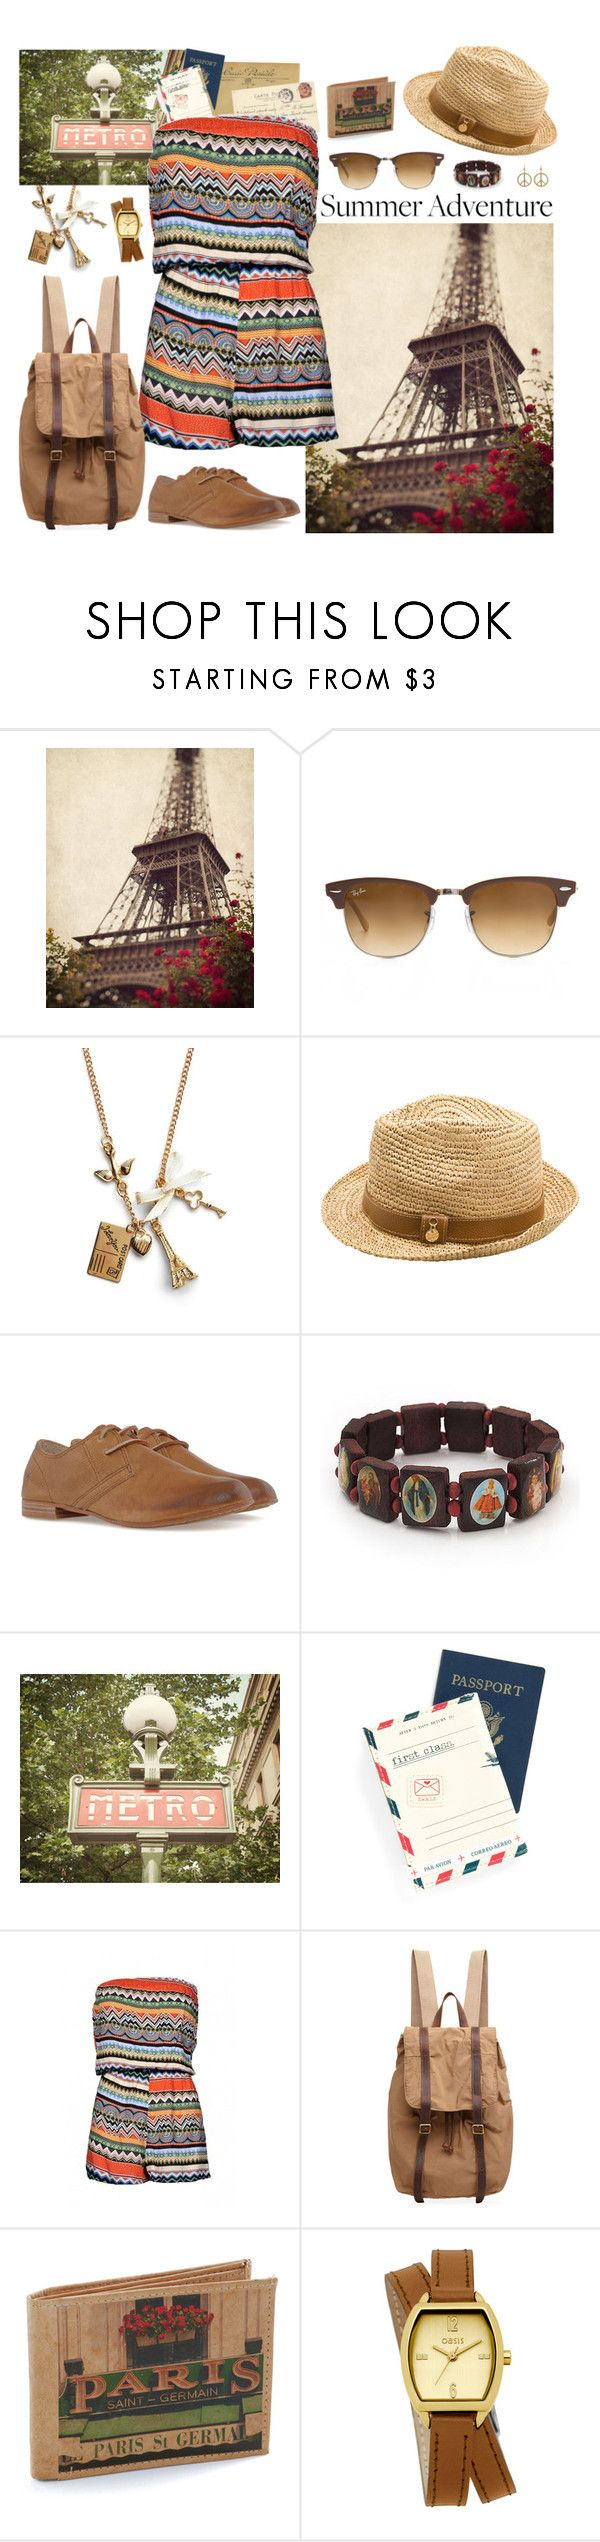 """Summer Adventure Paris"" by nellylein ❤ liked on Polyvore featuring Ray-Ban, Seychelles, Melissa Odabash, Frye, AllSaints, Disaster Designs, AX Paris, Organic by John Patrick, Oasis and Miso"